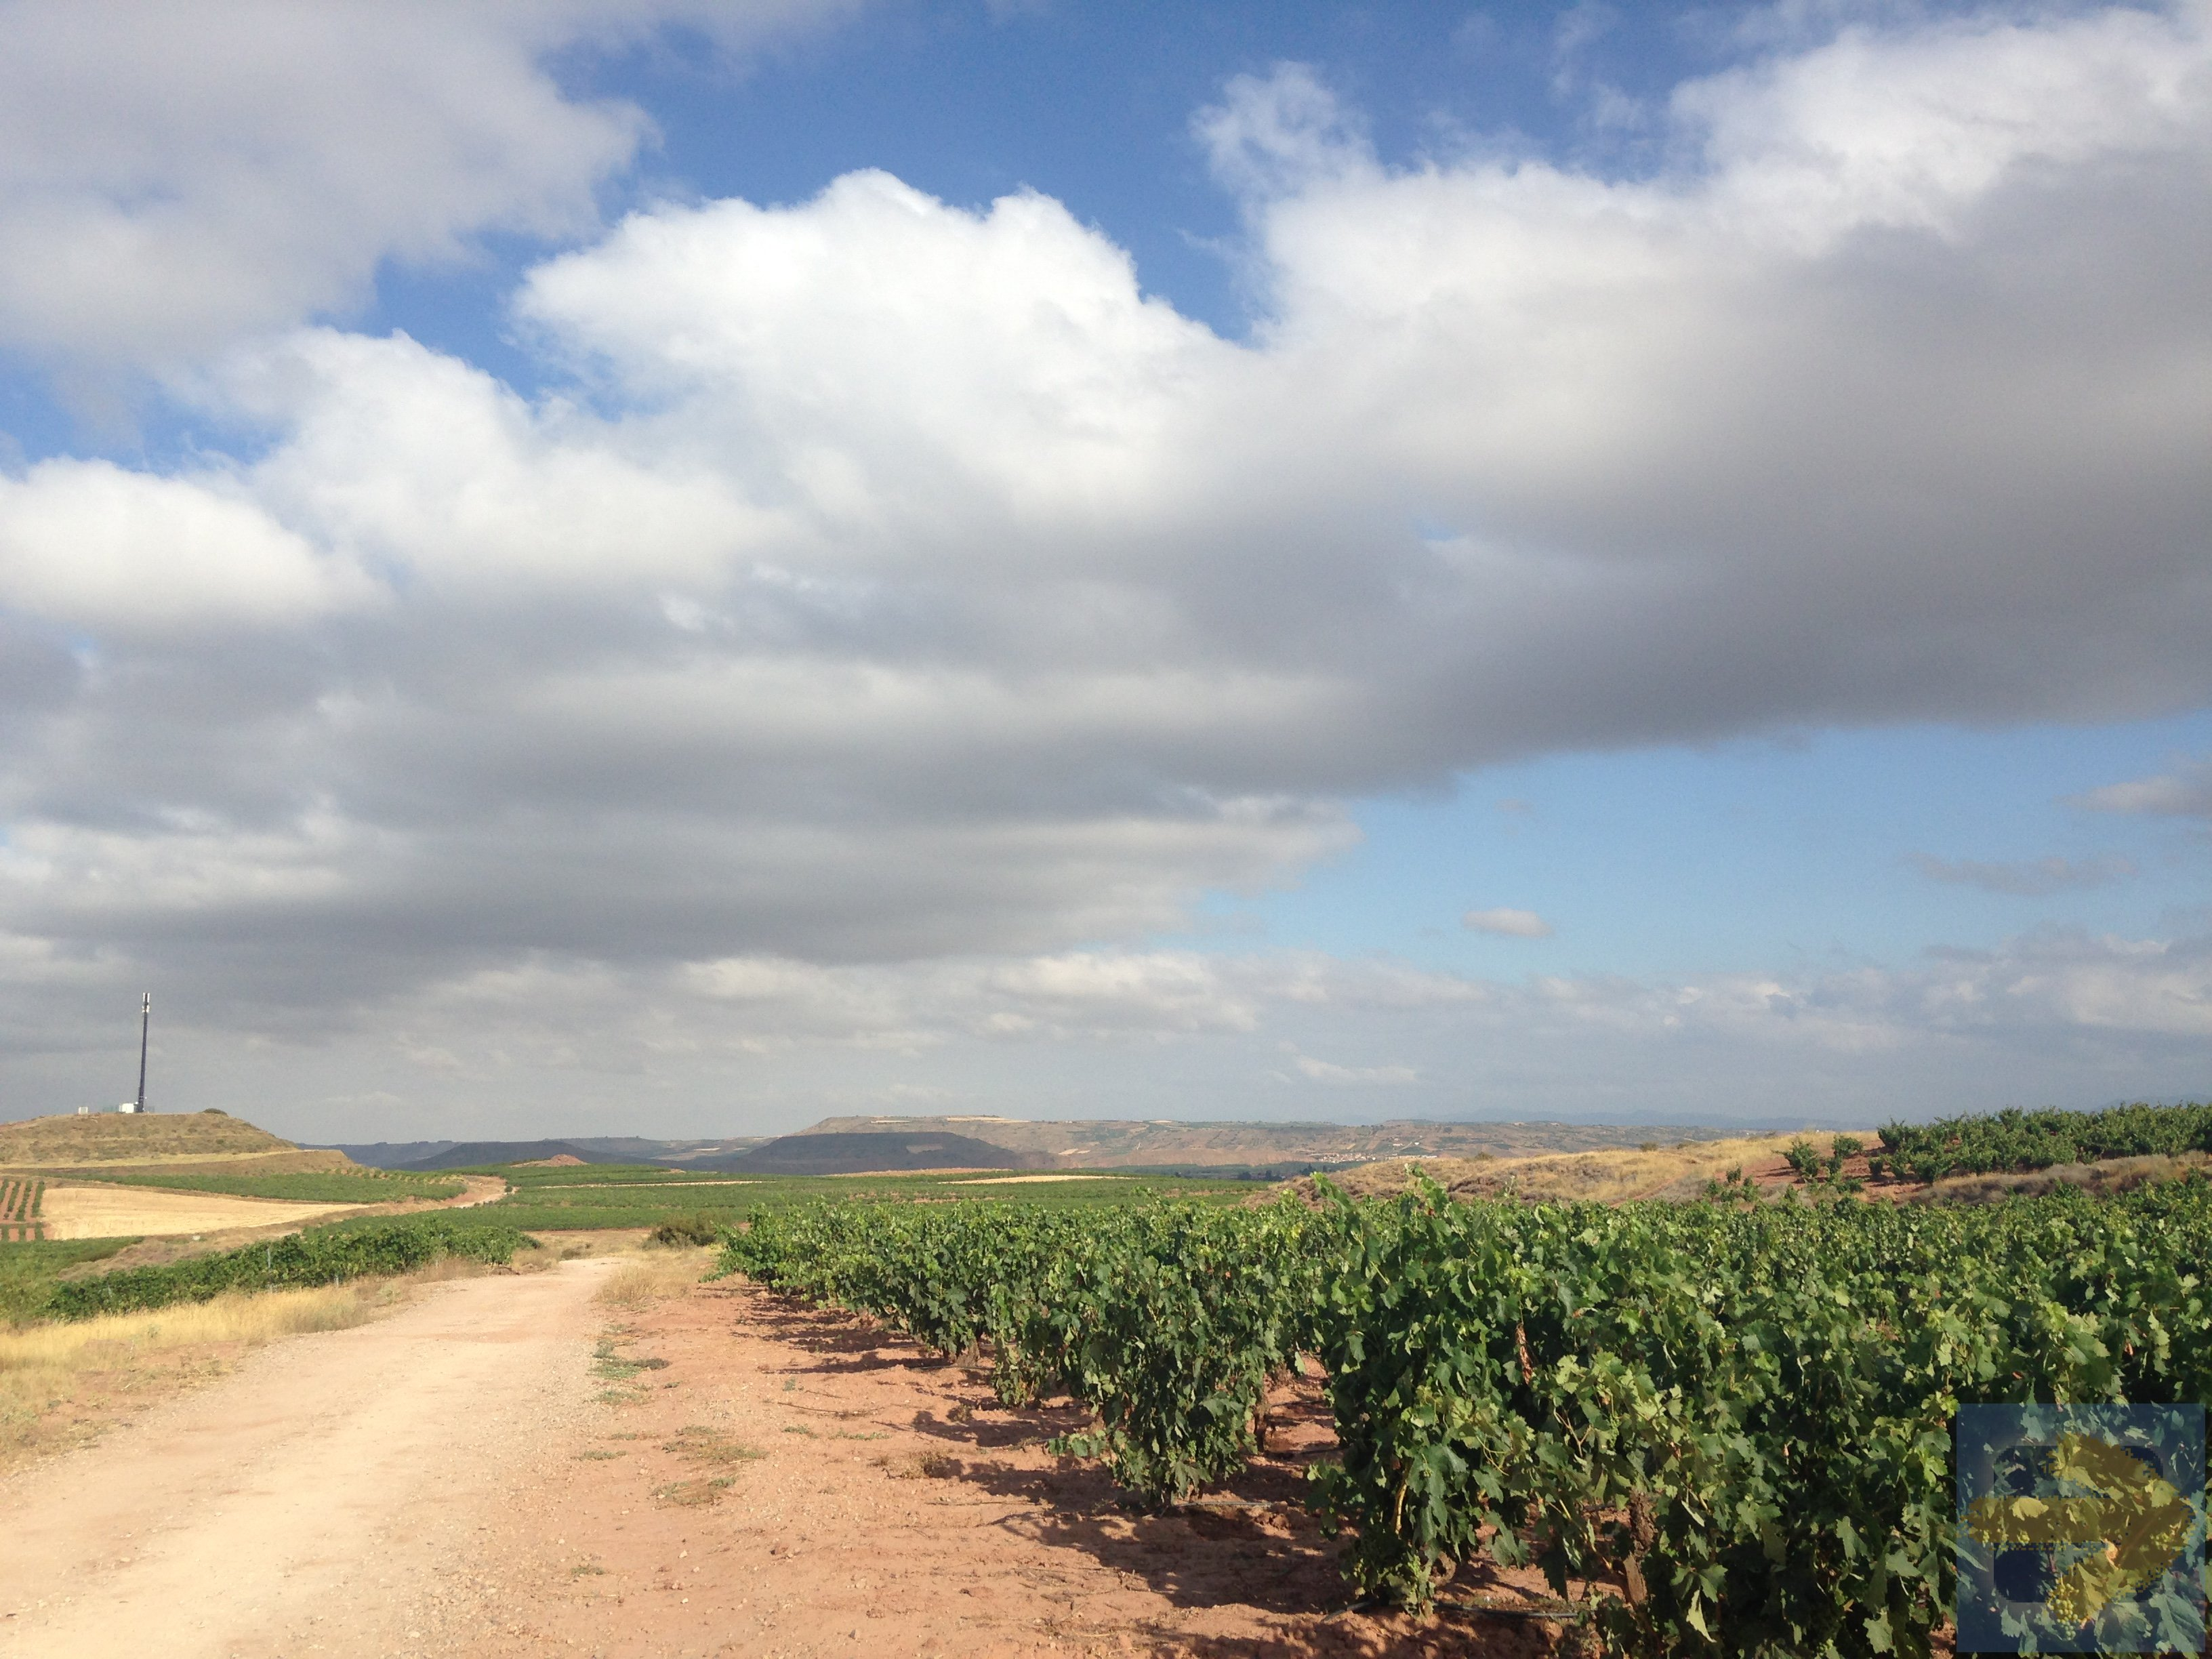 Where your Rioja wine comes from